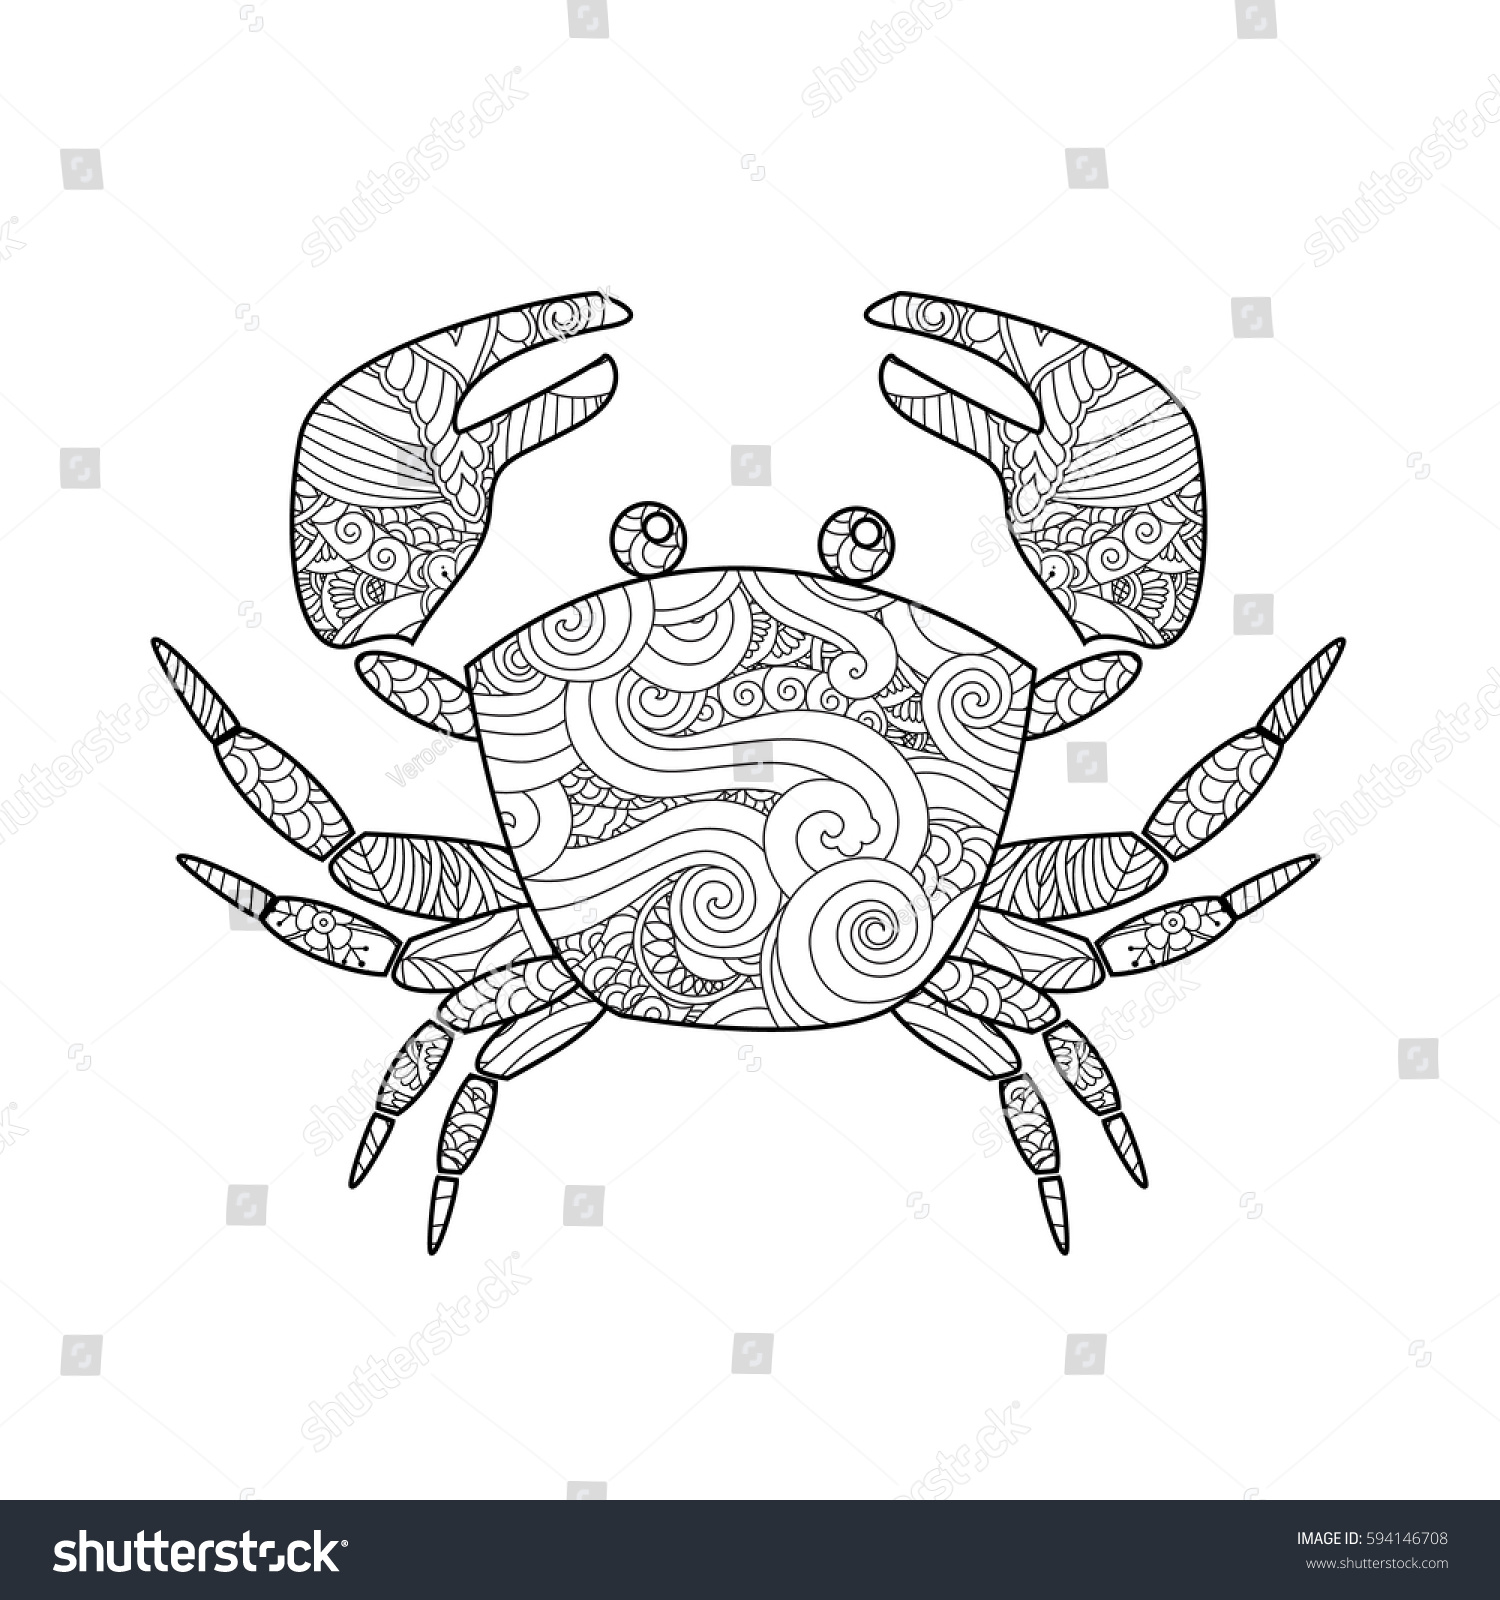 Coloring Page Ornate Crab Isolated On White Background Square Composition Book For